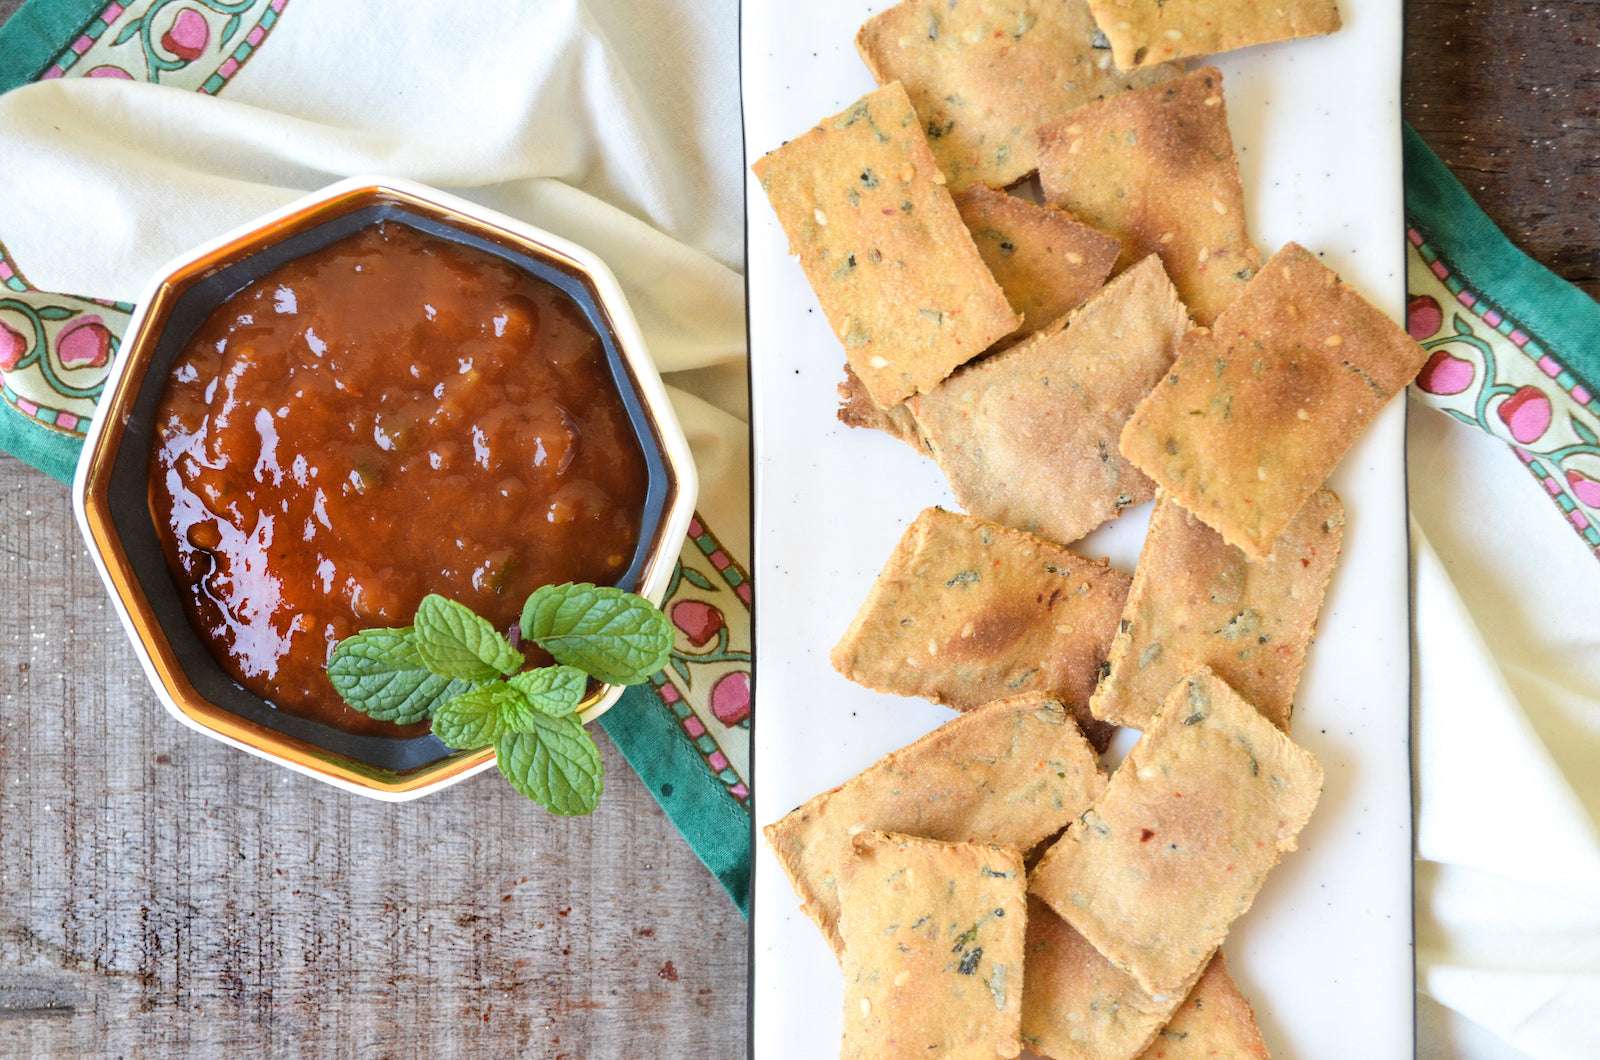 methi crackers with salsa